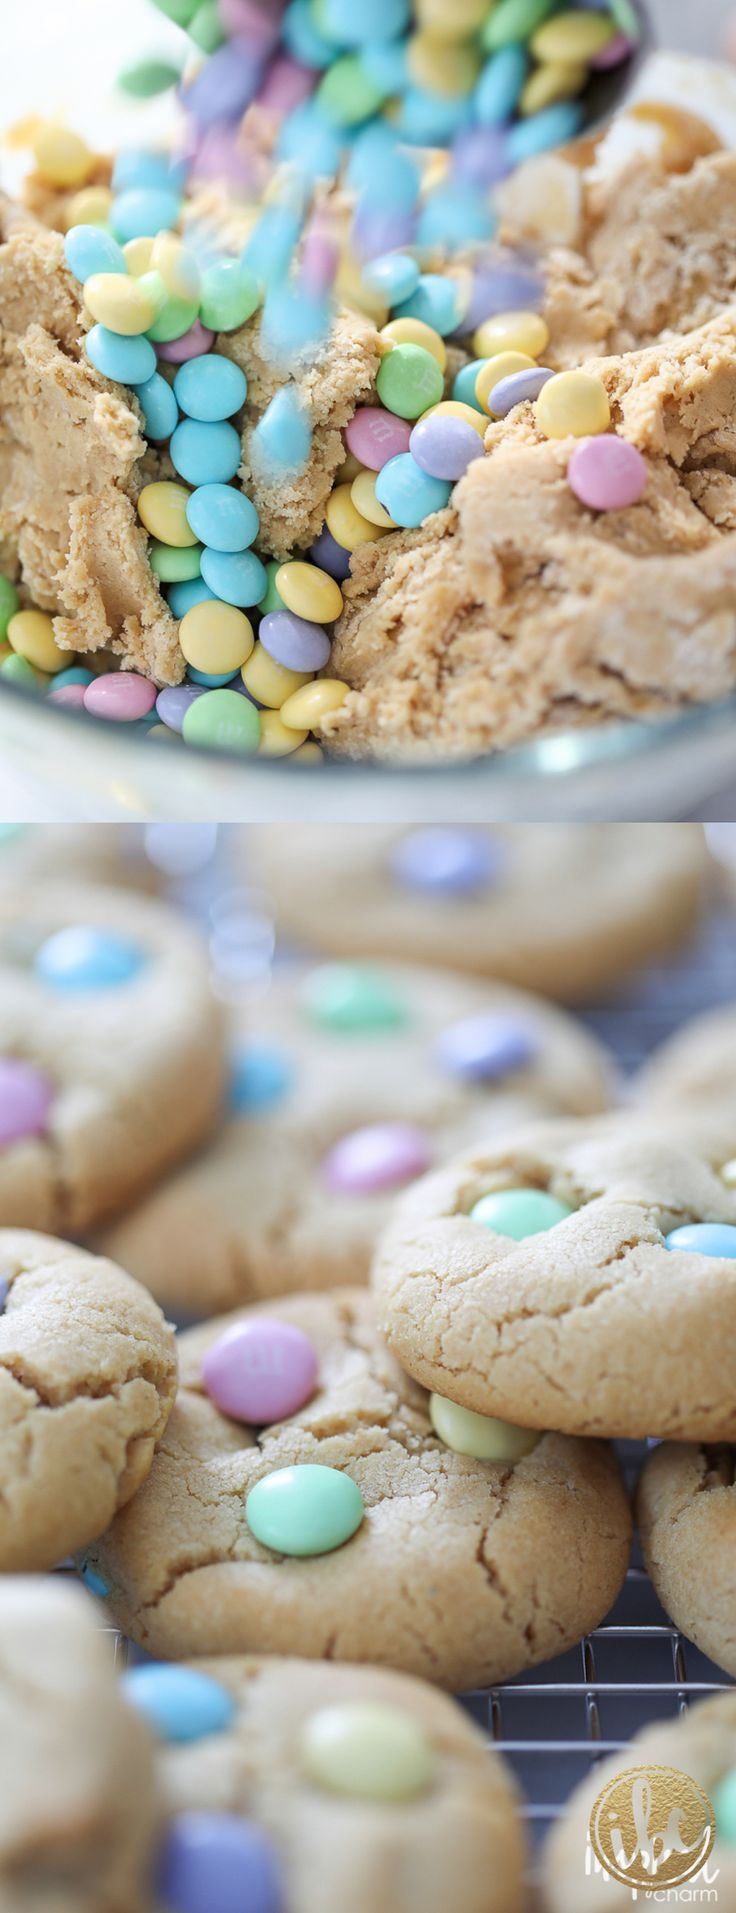 Easter Cookies! Peanut Butter M&M Cookies - spring Easter dessert recipe